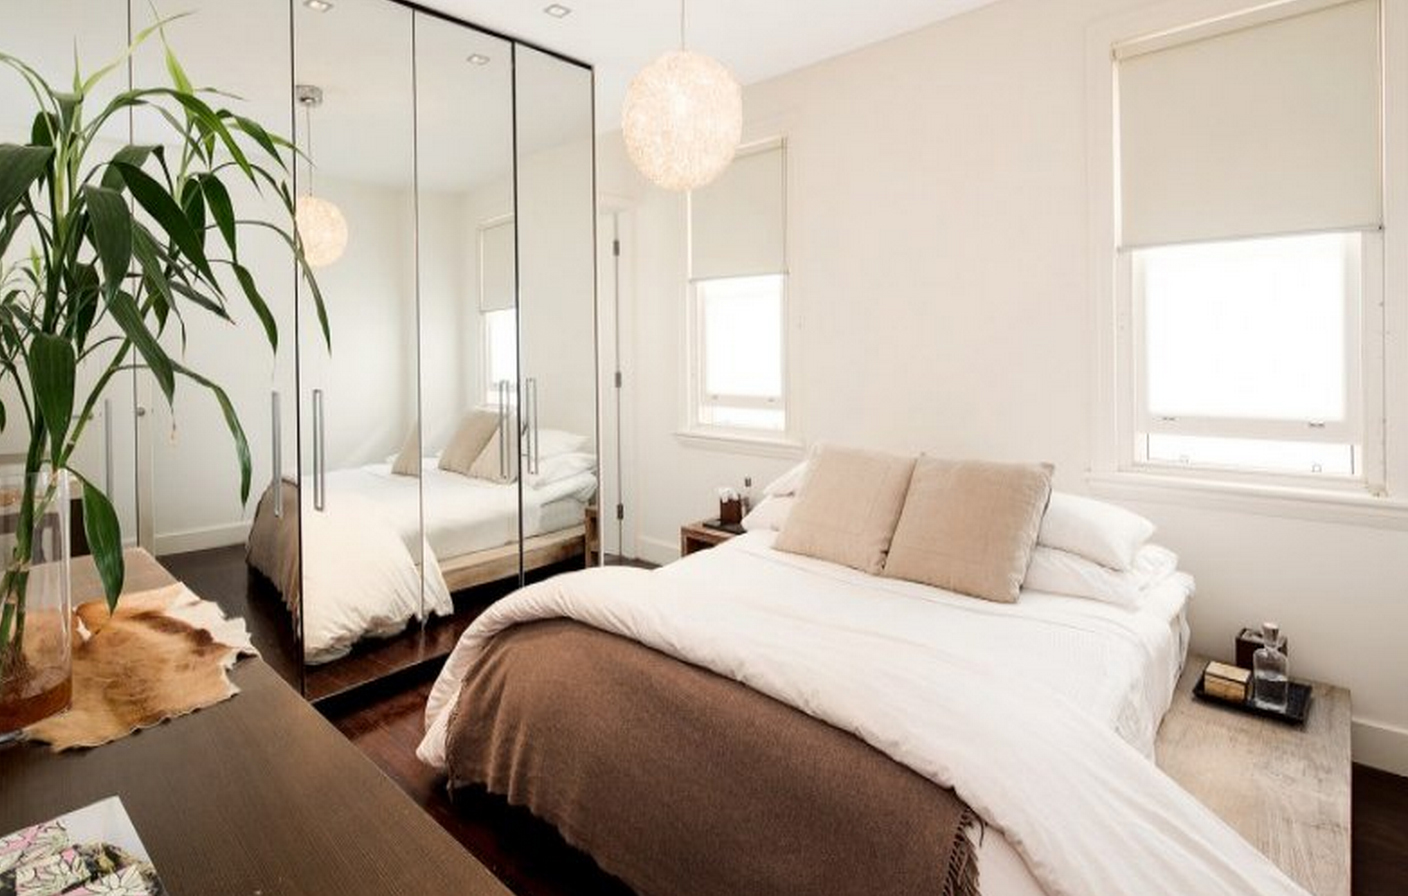 How To Design Your Small Bedroom To Make It Look Better And Spacious Upper Home,What Color Paint For Bathroom